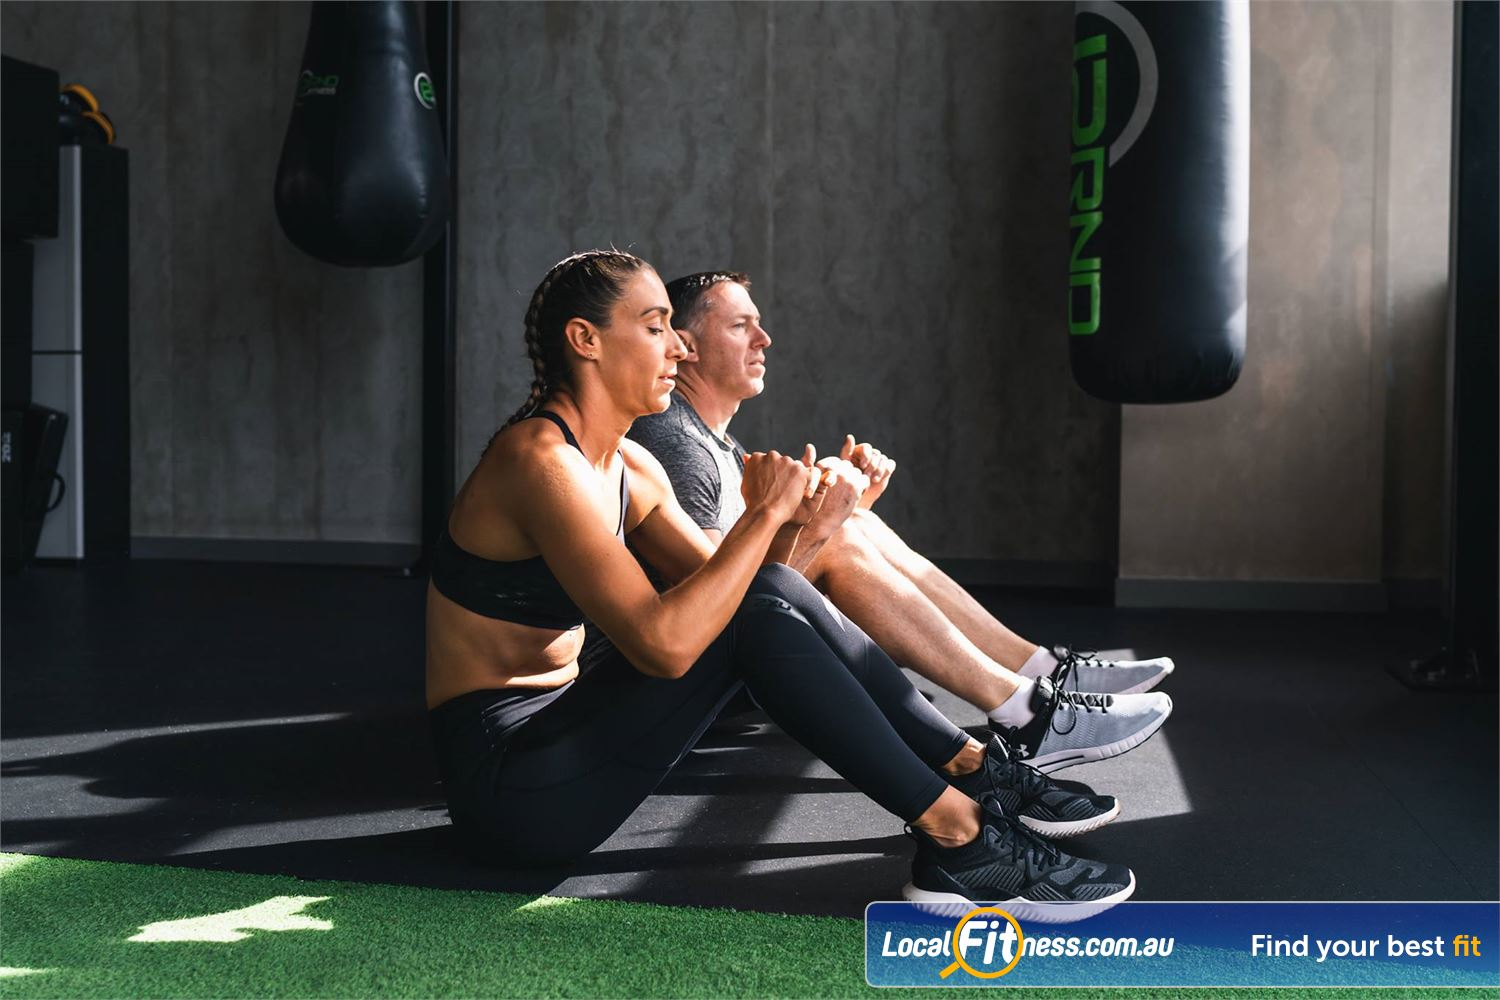 12 Round Fitness Camberwell Camberwell HIIT group training is scientifically proven to give you results.